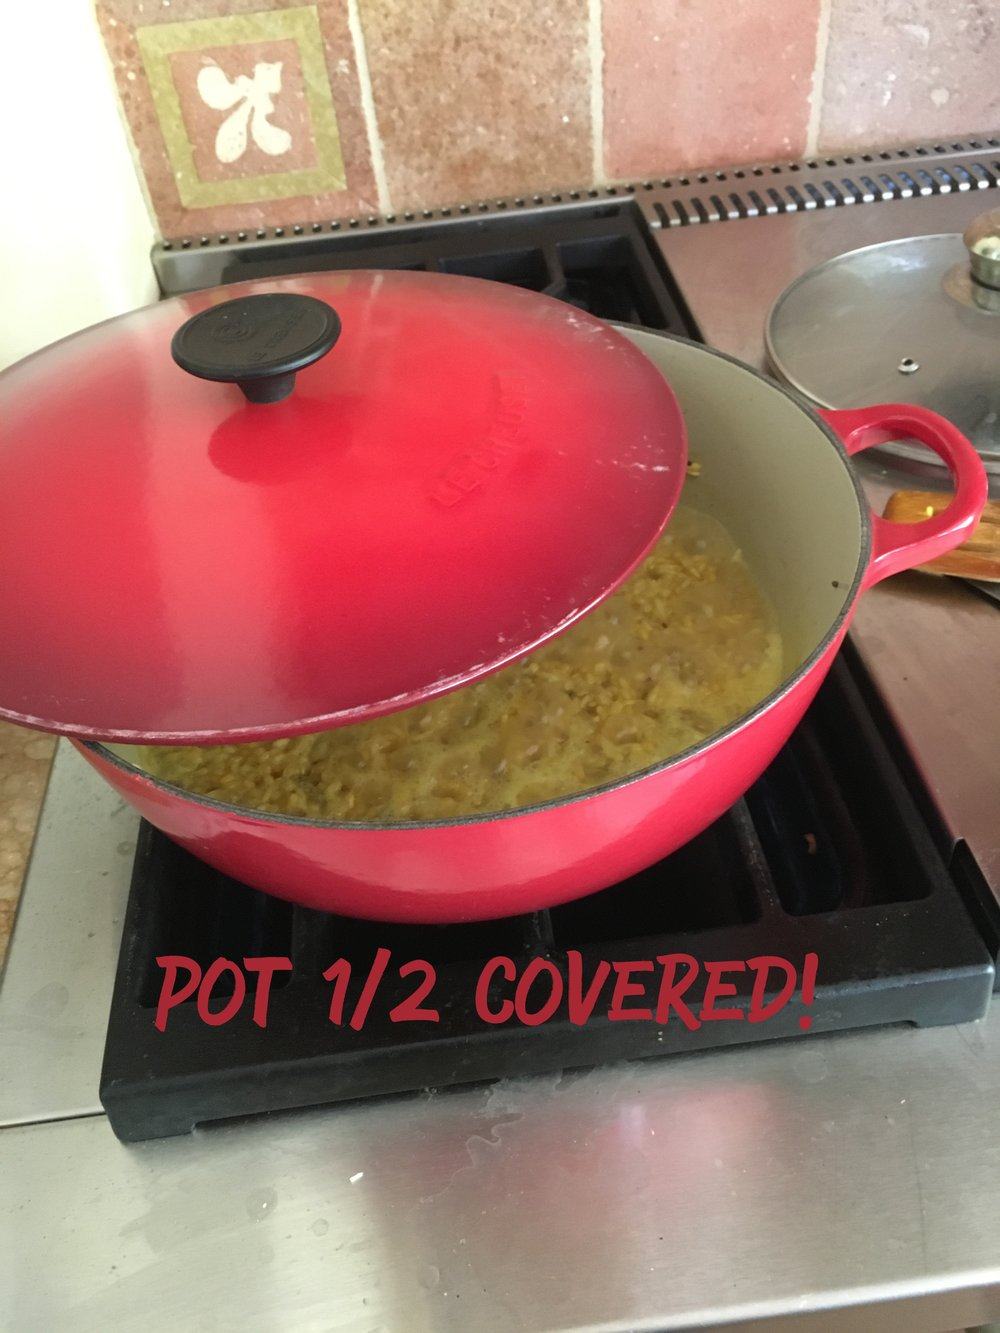 Pot 1/2 Covered